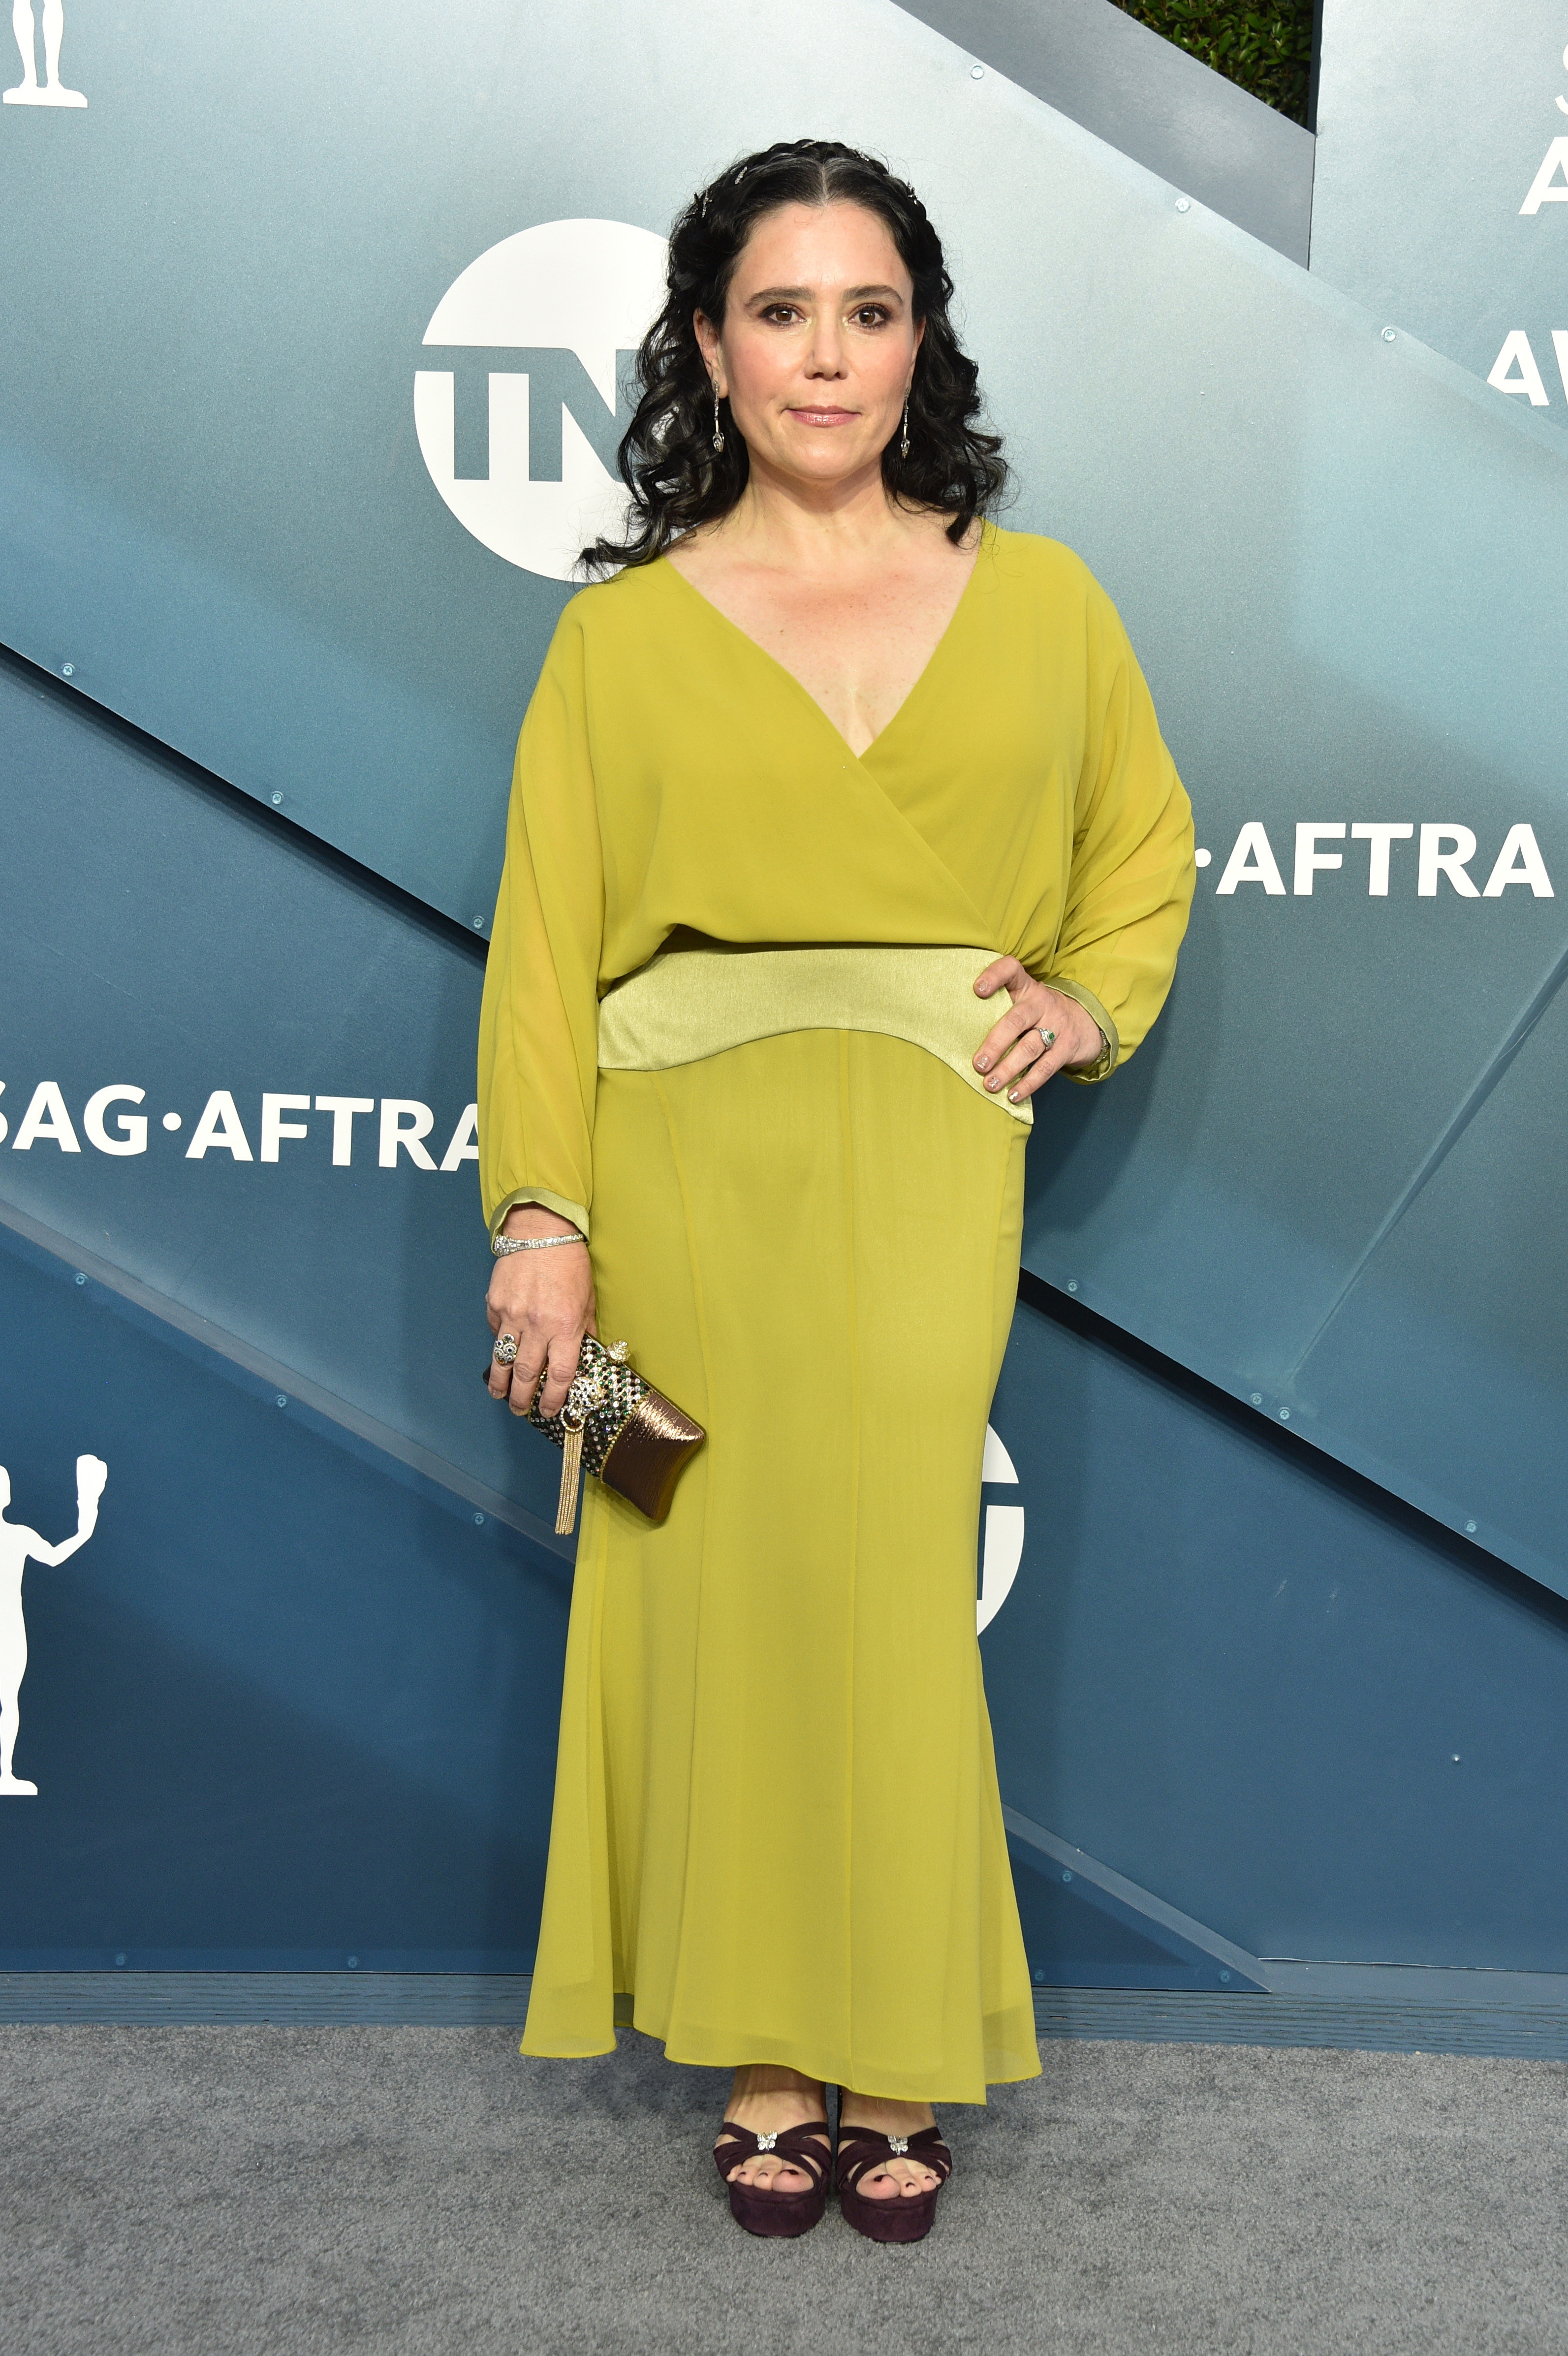 LOS ANGELES, CALIFORNIA - JANUARY 19: Alex Borstein attends the 26th Annual Screen ActorsGuild Awards at The Shrine Auditorium on January 19, 2020 in Los Angeles, California. 721430 (Photo by Gregg DeGuire/Getty Images for Turner)